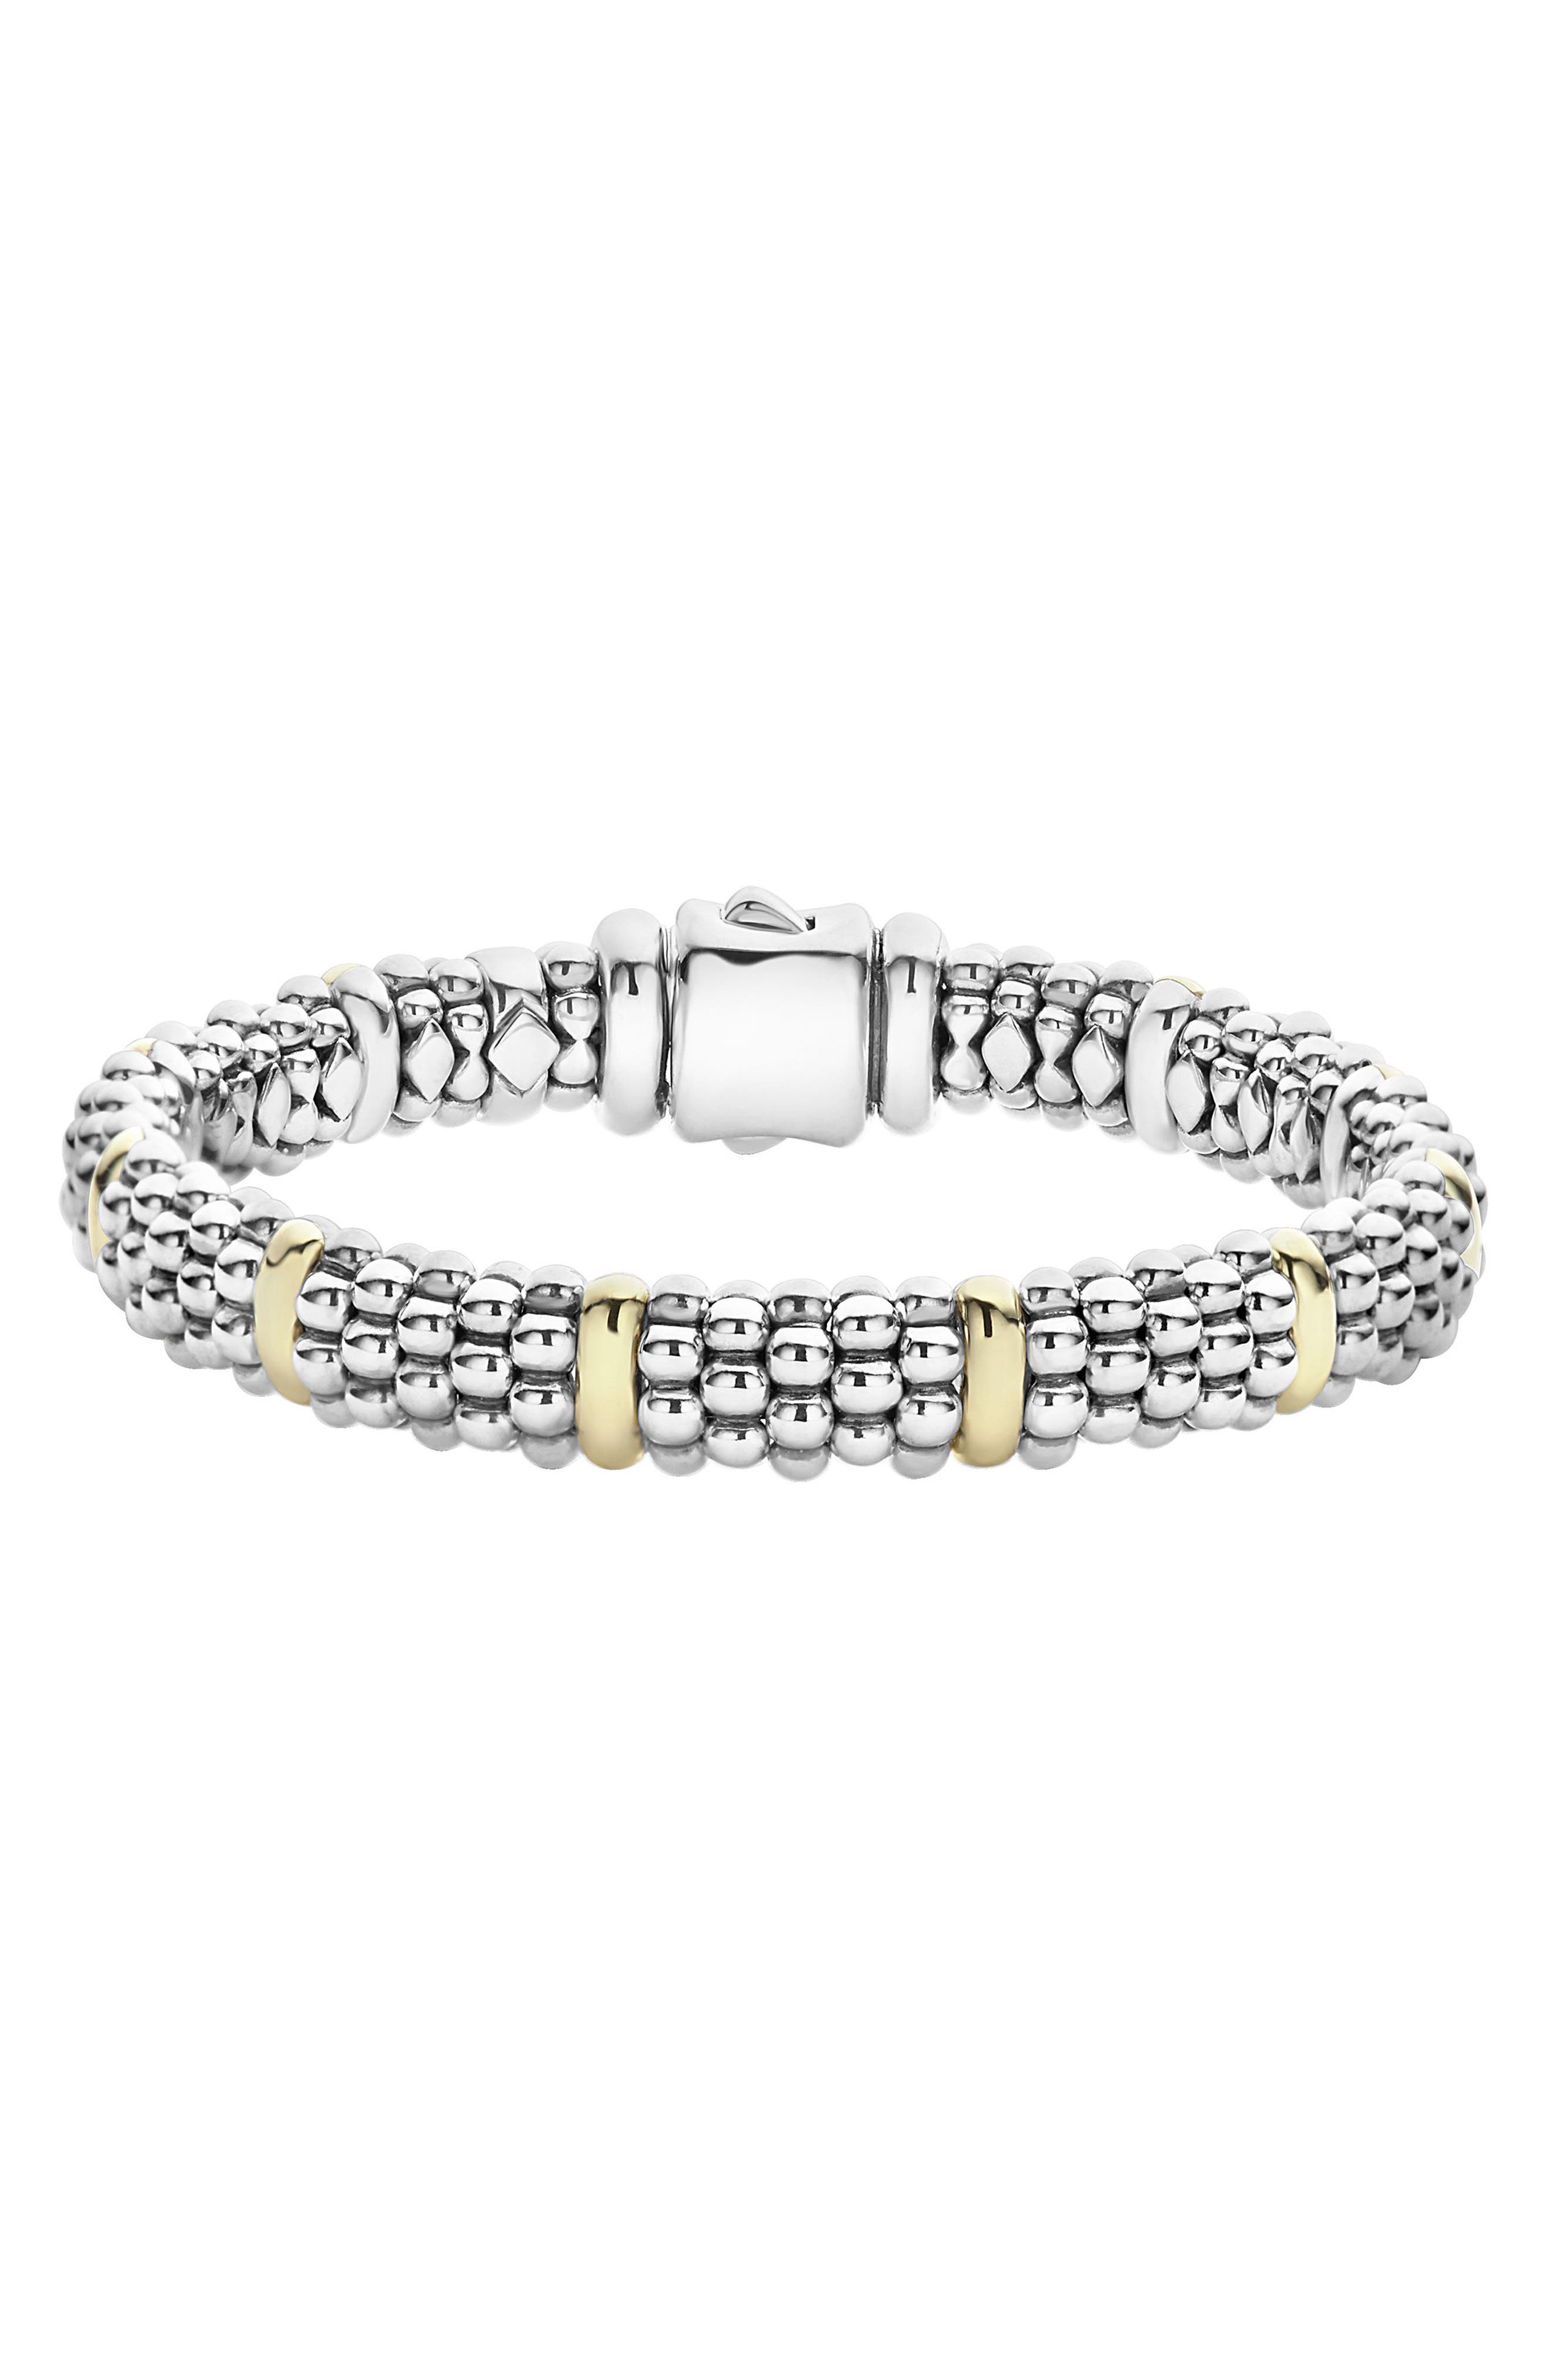 Oval Caviar Rope Bracelet,                         Main,                         color, Silver/ Gold